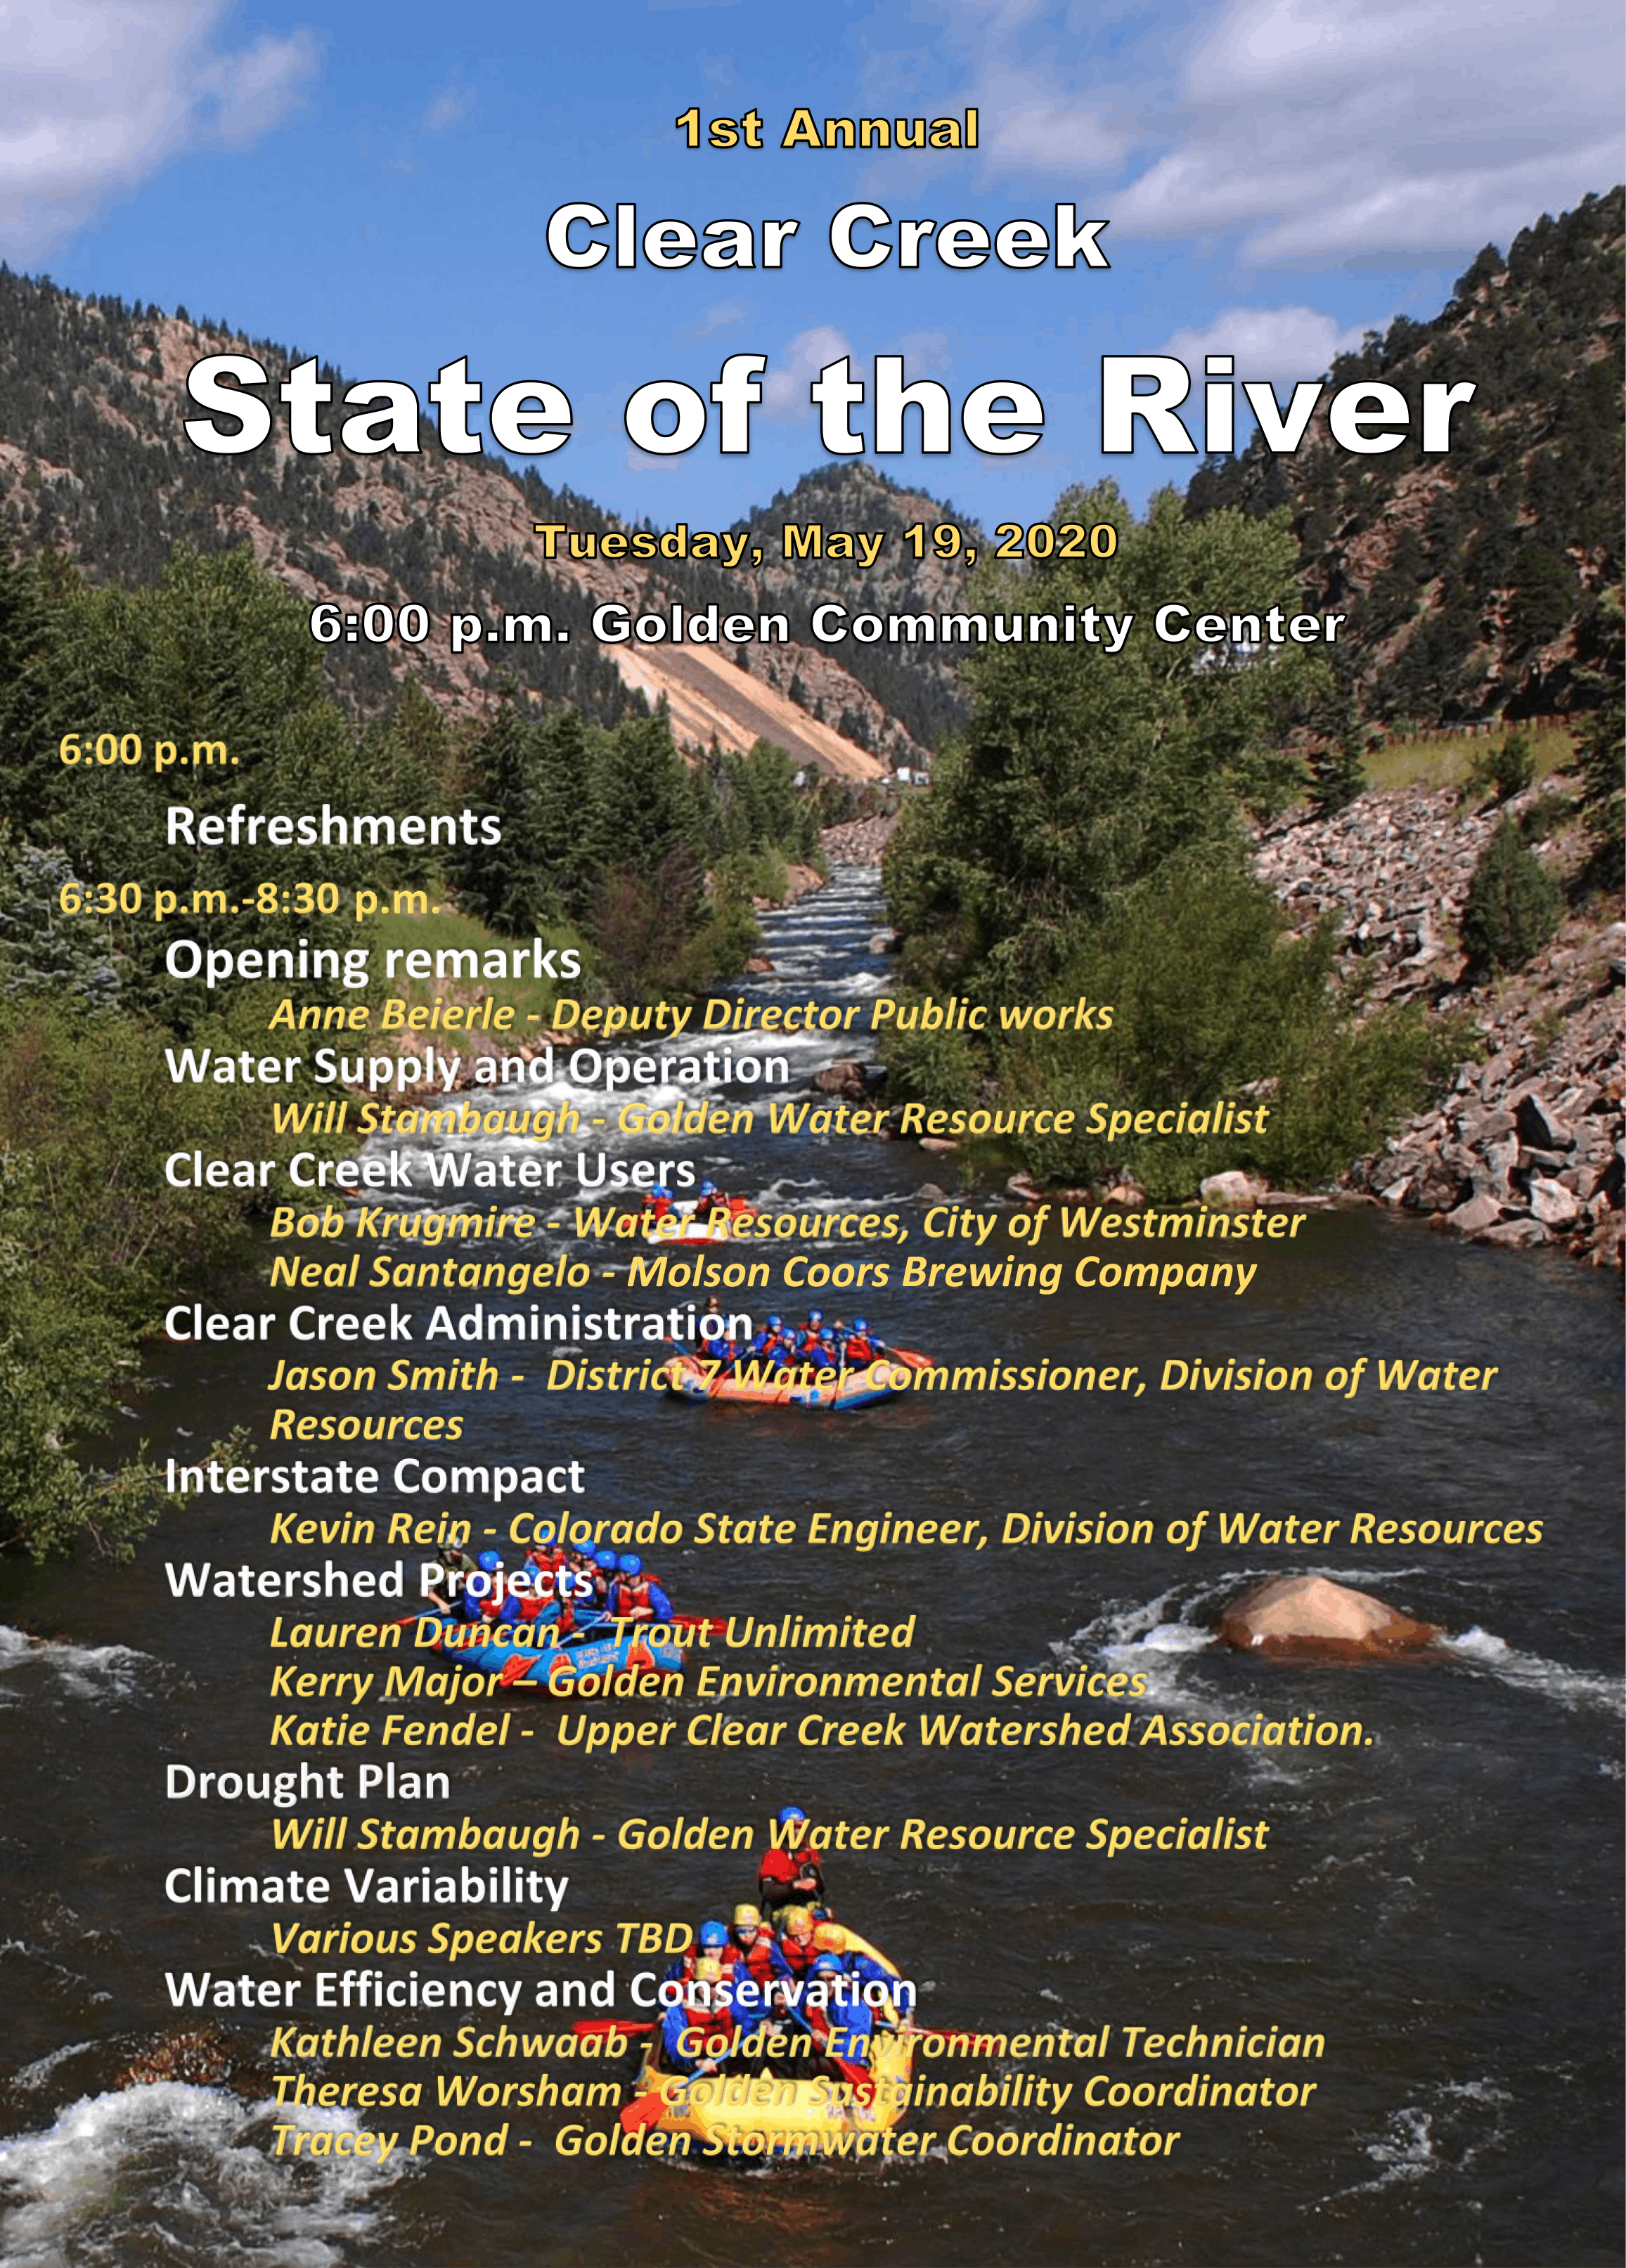 State of the River Topics & Speakers